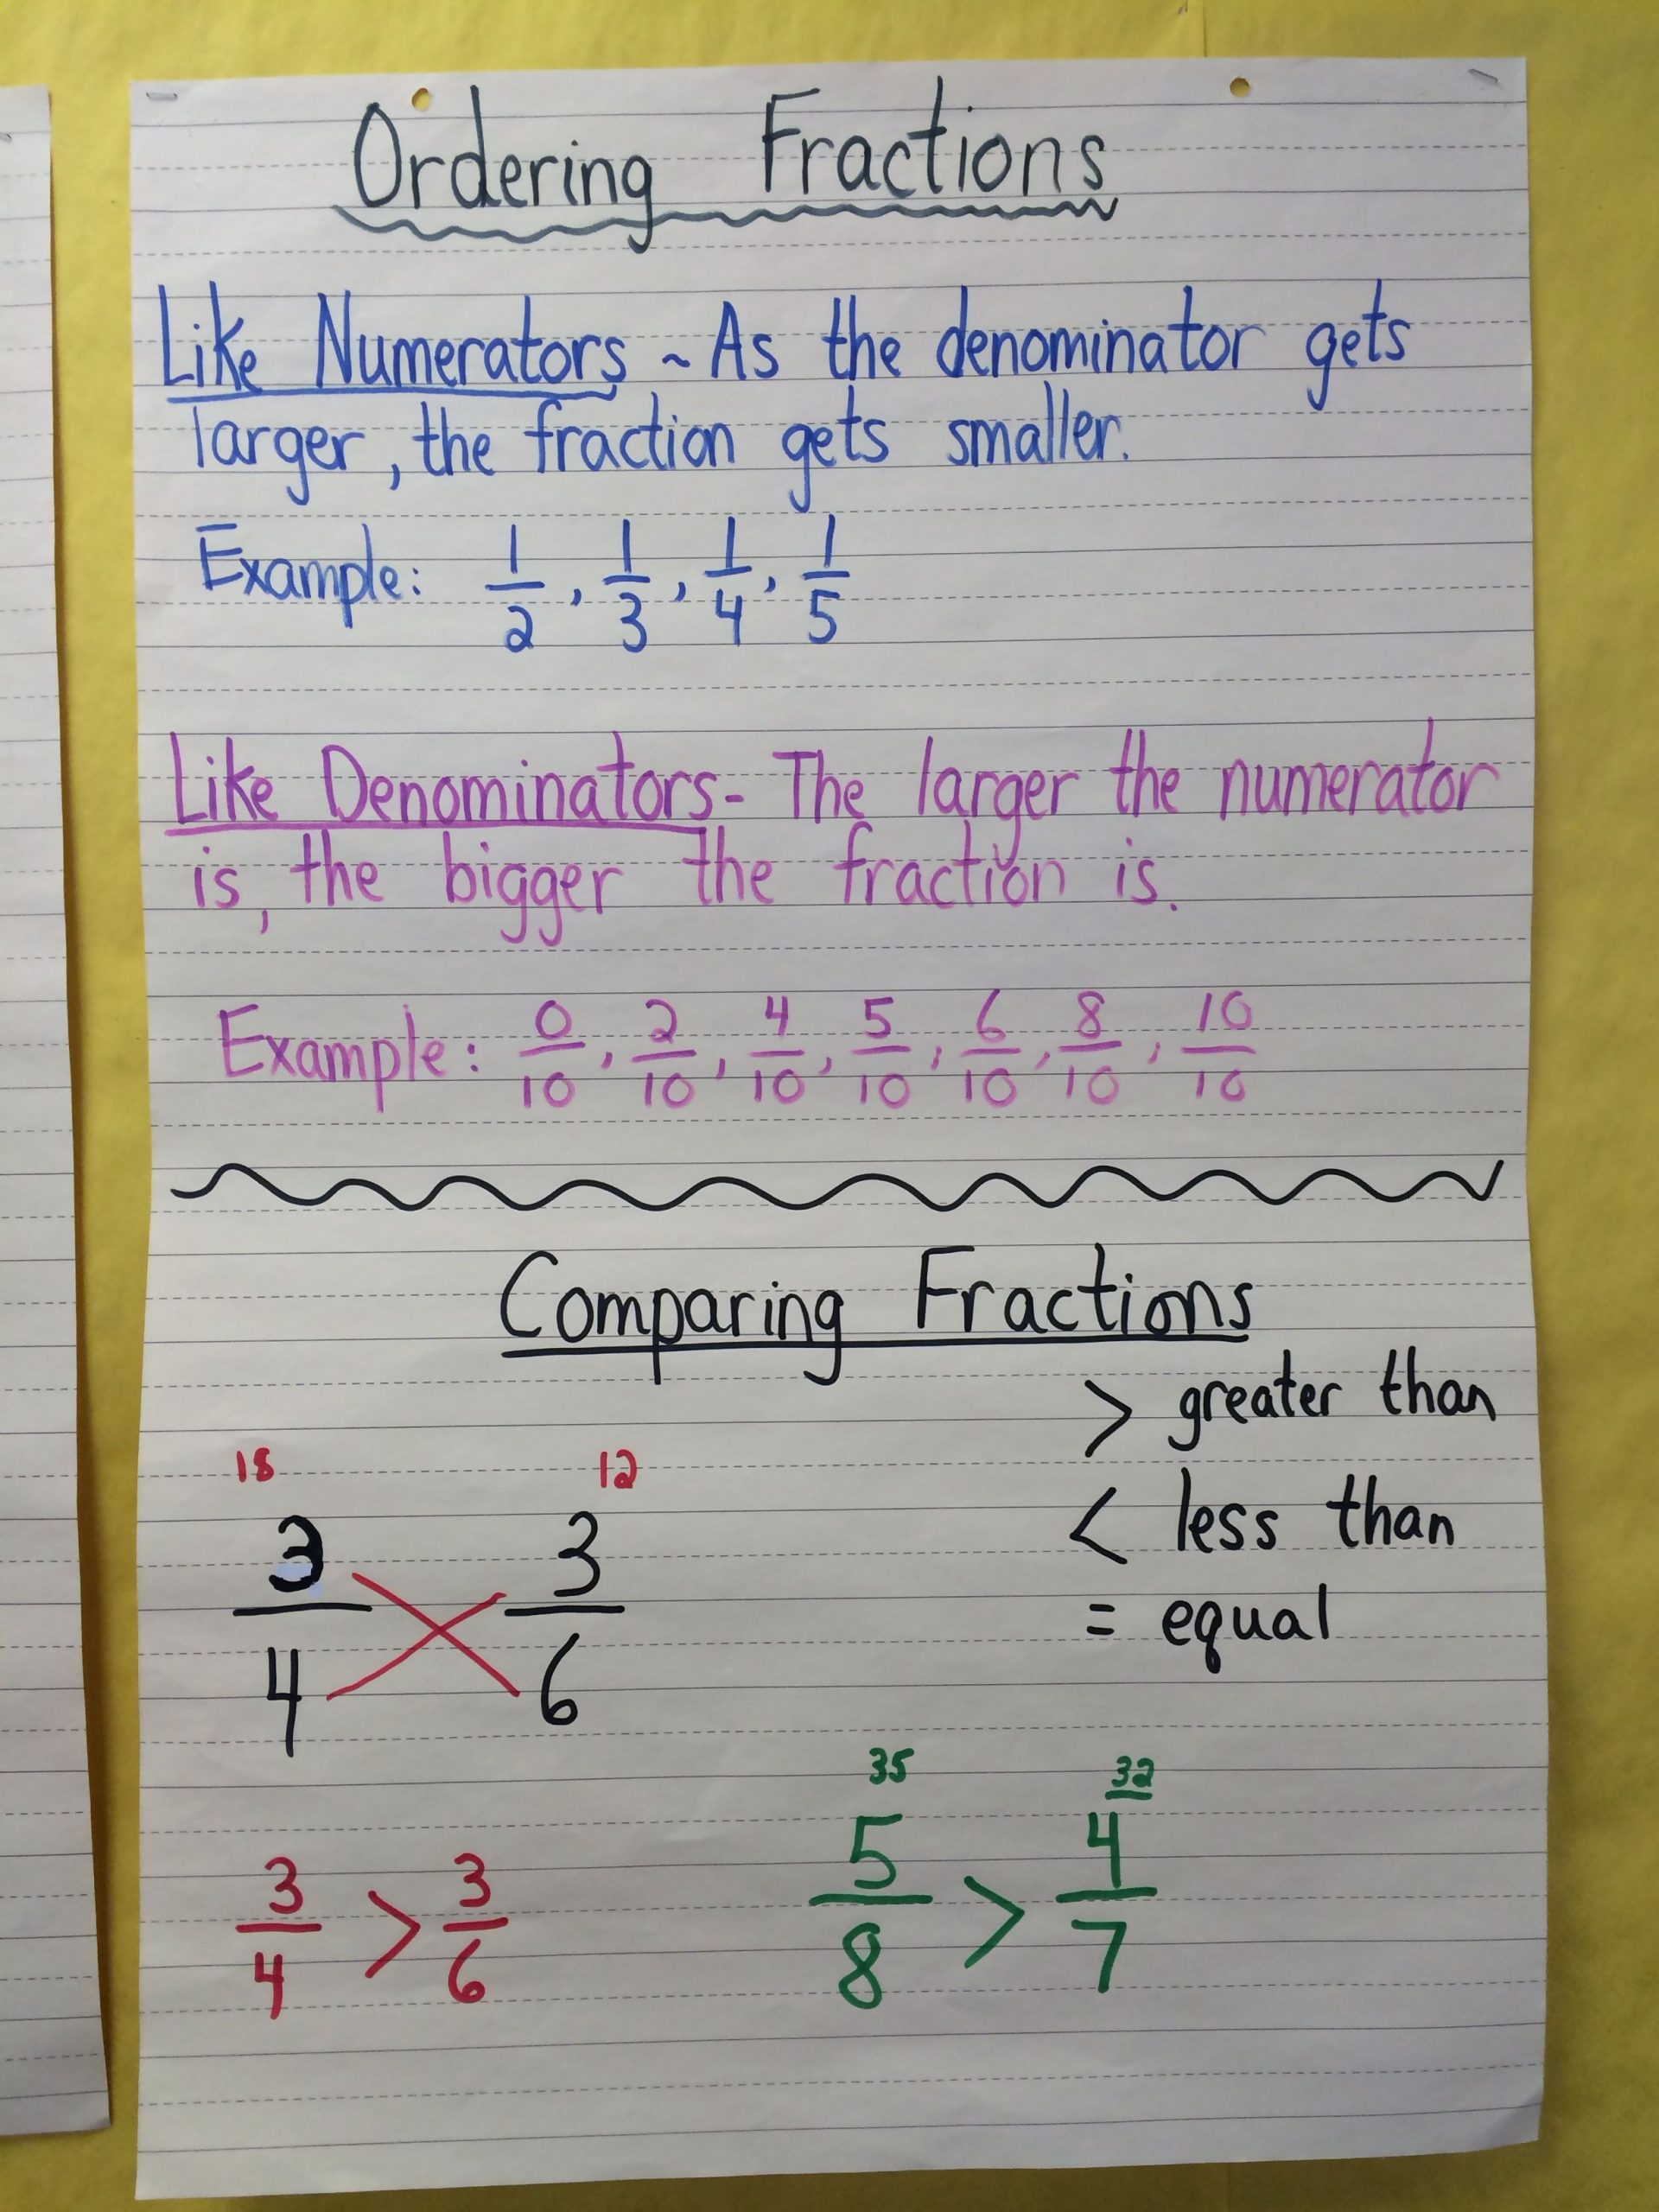 Ordering Fractions Worksheet 4th Grade Paring and ordering Fractions